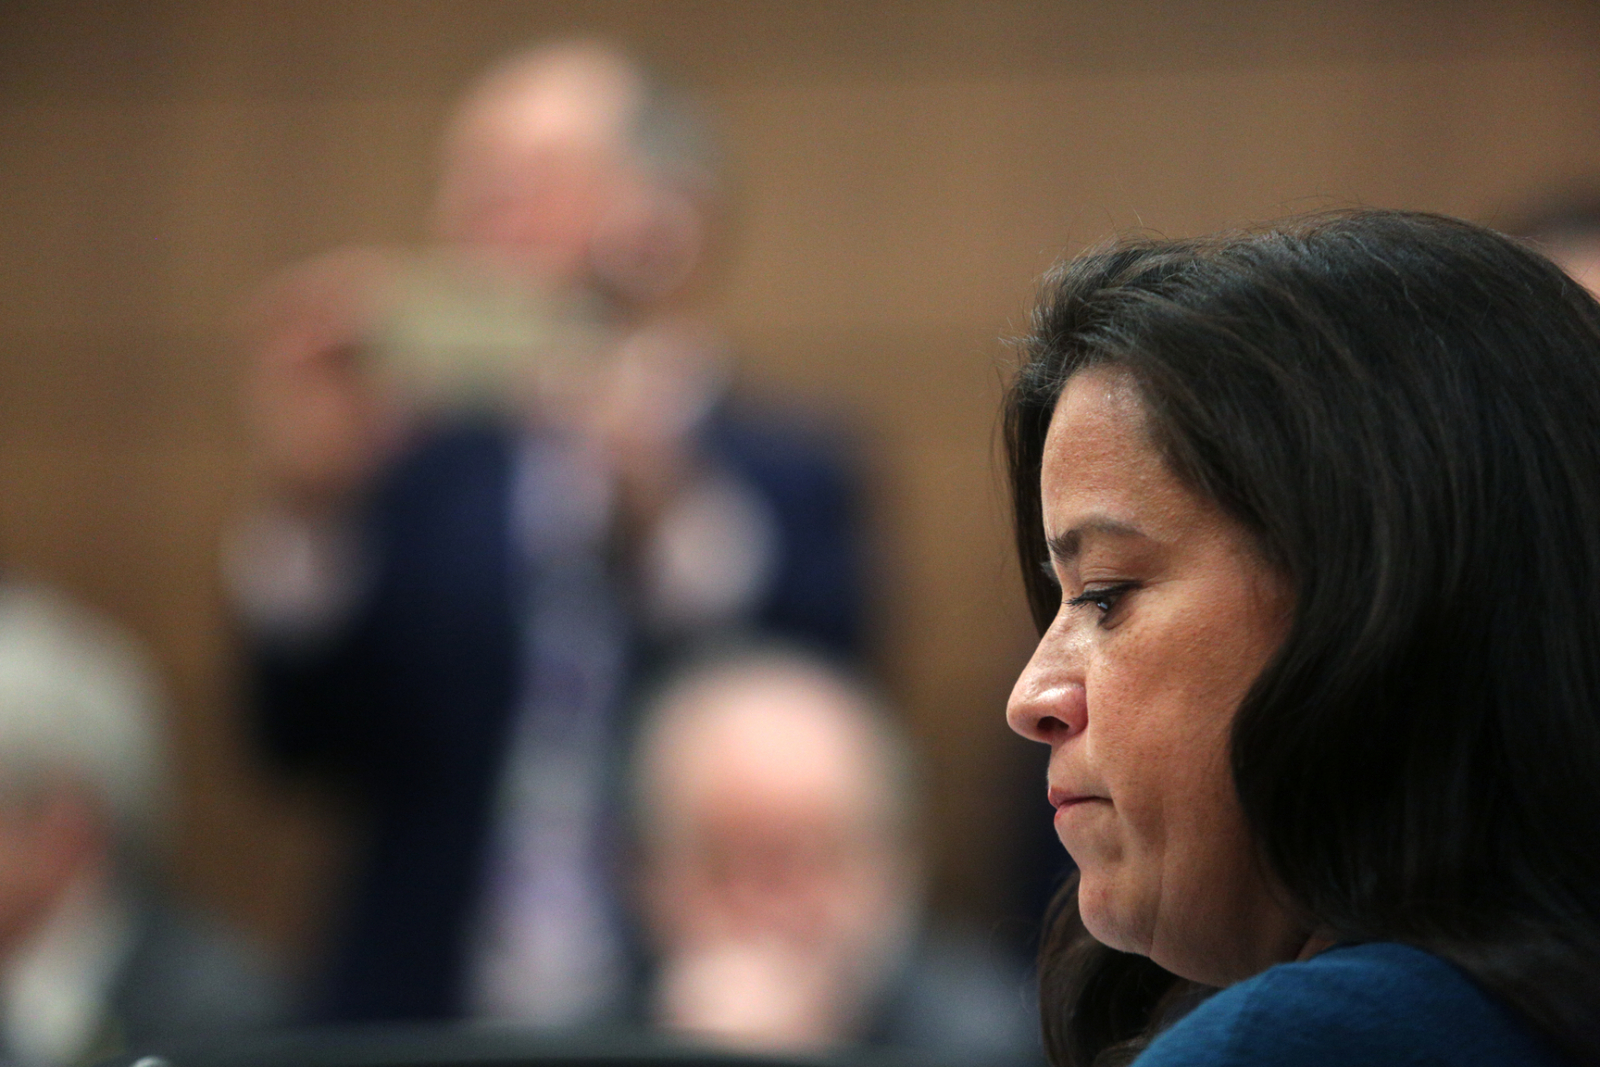 Wilson-Raybould Describes 'Sustained Pressure' to Drop SNC-Lavalin Prosecution